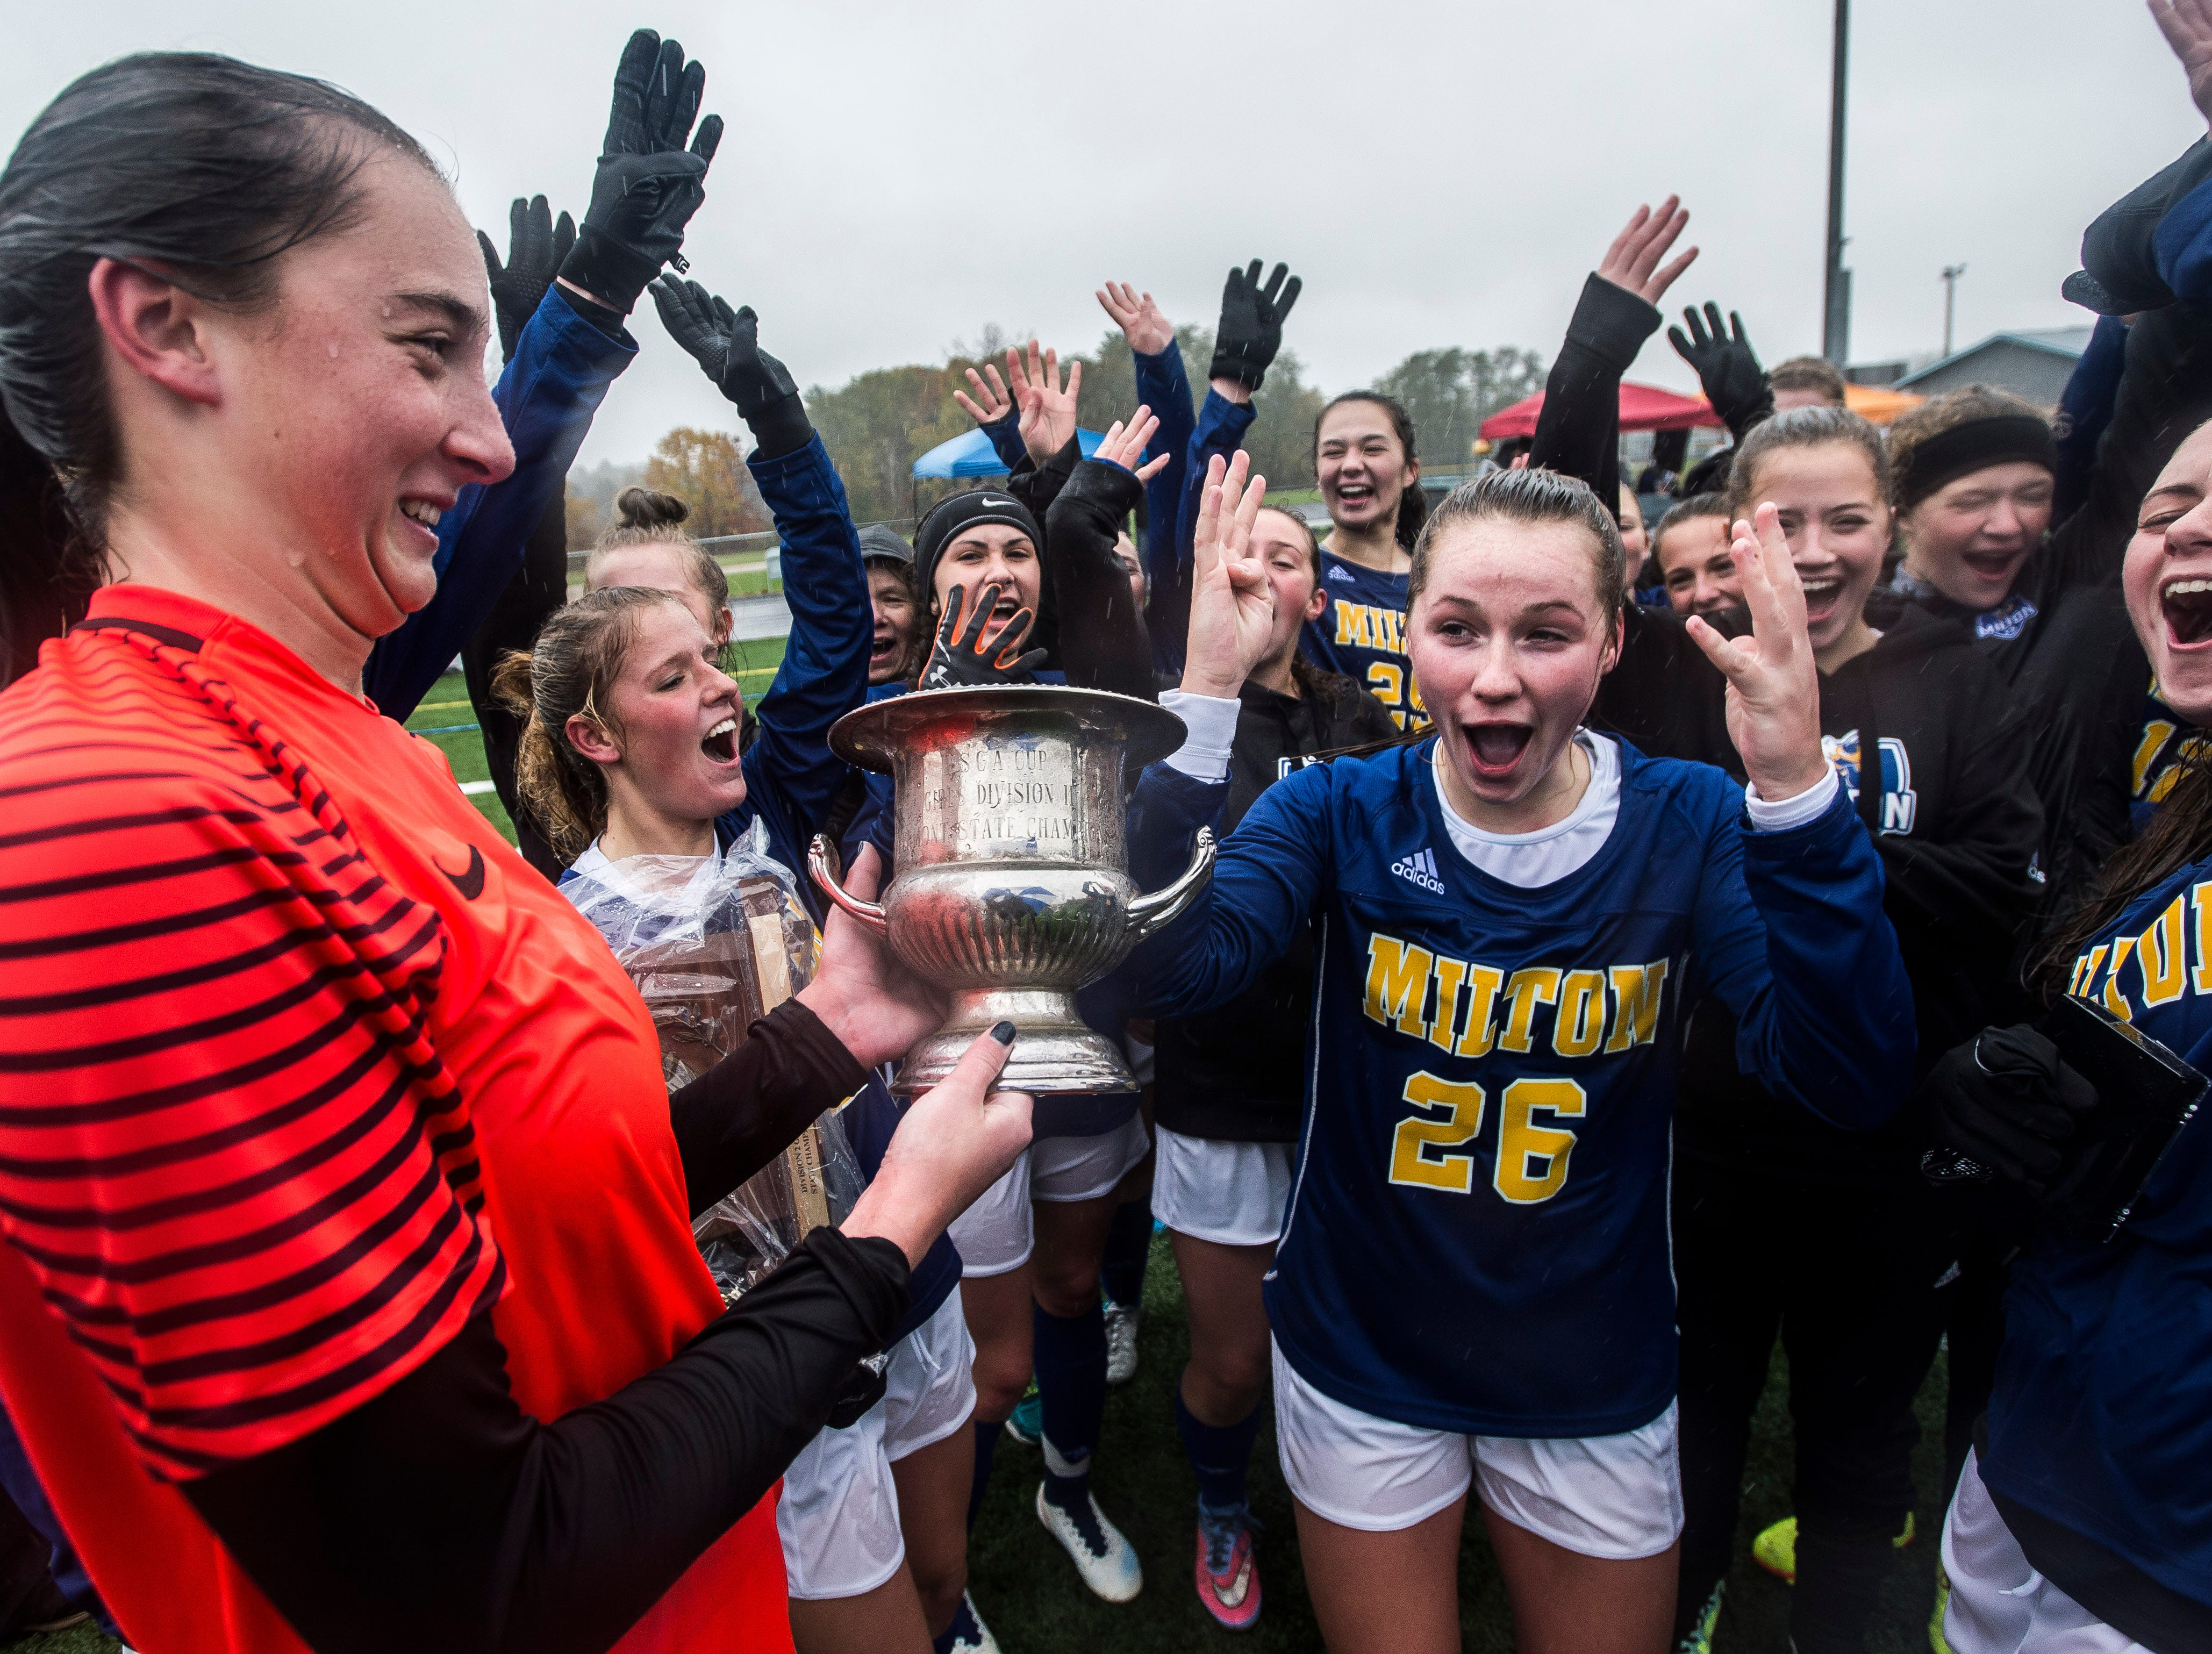 Milton girl's soccer celebrates their championship win over Rice after the Div. 2 Vermont State girl's high school soccer championship on Saturday, Nov. 3, 2018, at South Burlington High School. Milton won the championship in sudden-death overtime, 2-1.